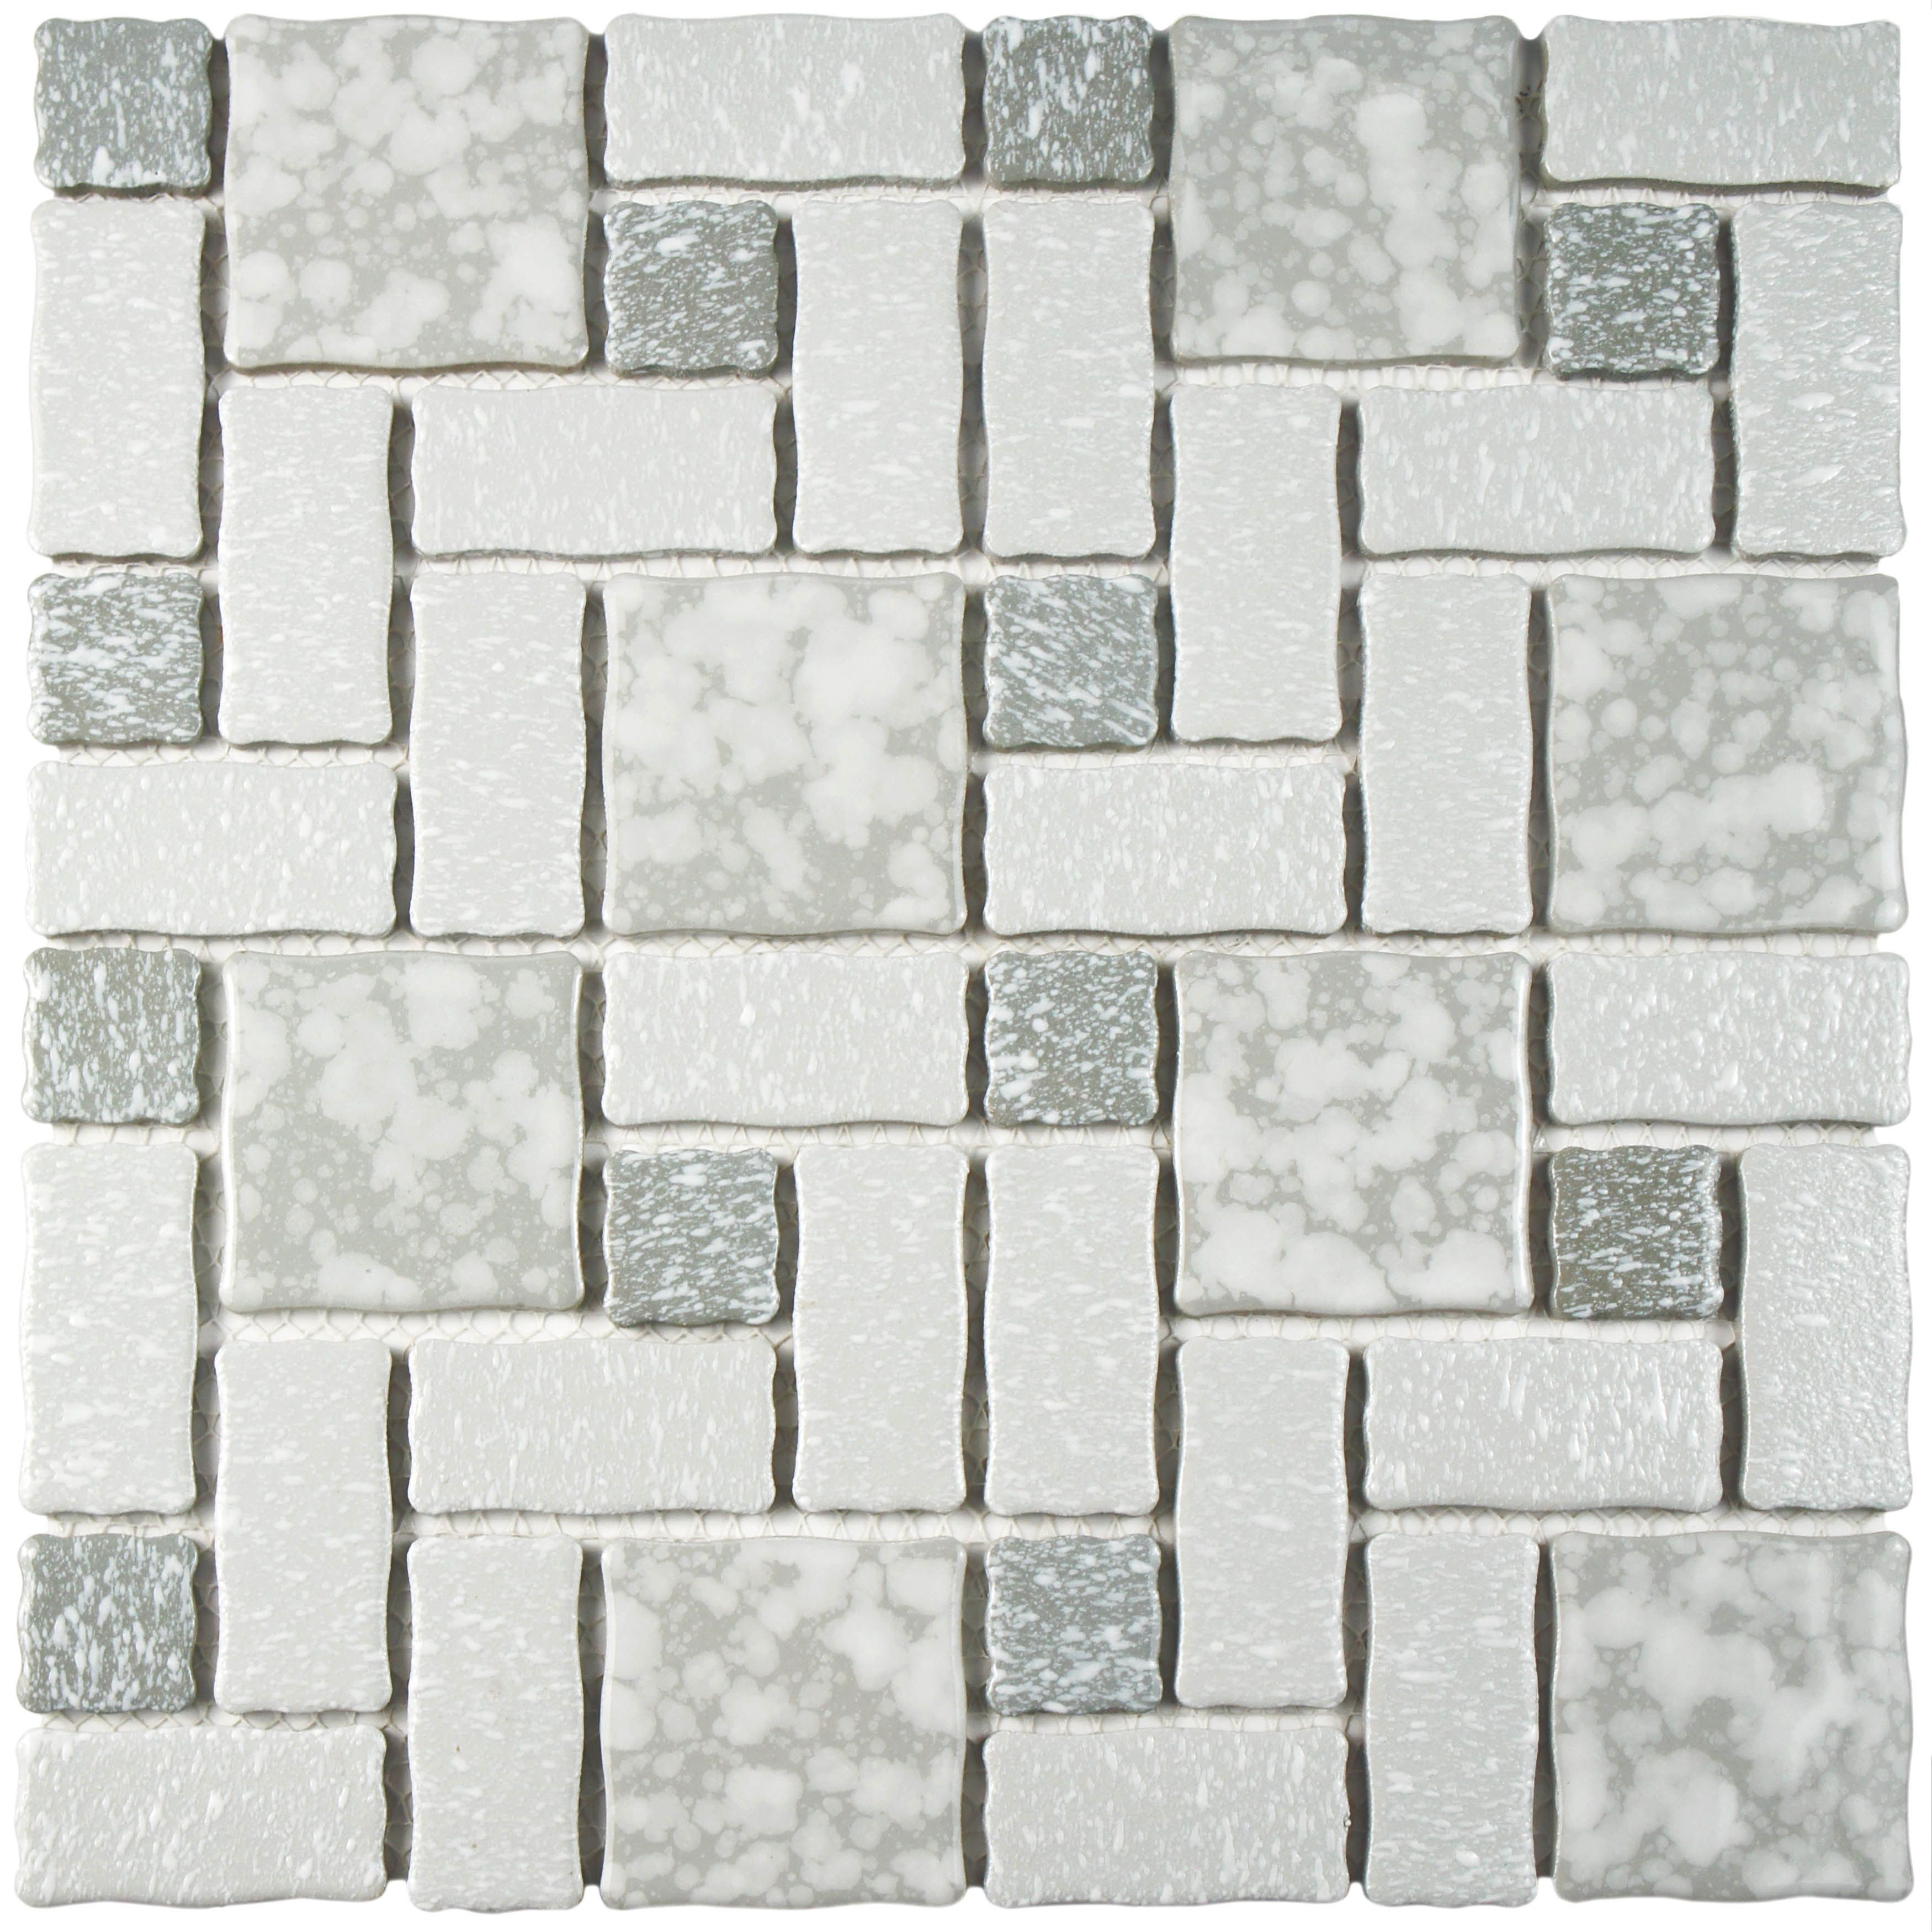 Elitetile pallas random sized porcelain mosaic tile in gray and somertile collegiate grey porcelain mosaic floor and wall tile case of overstock shopping big discounts on somertile floor tiles dailygadgetfo Images